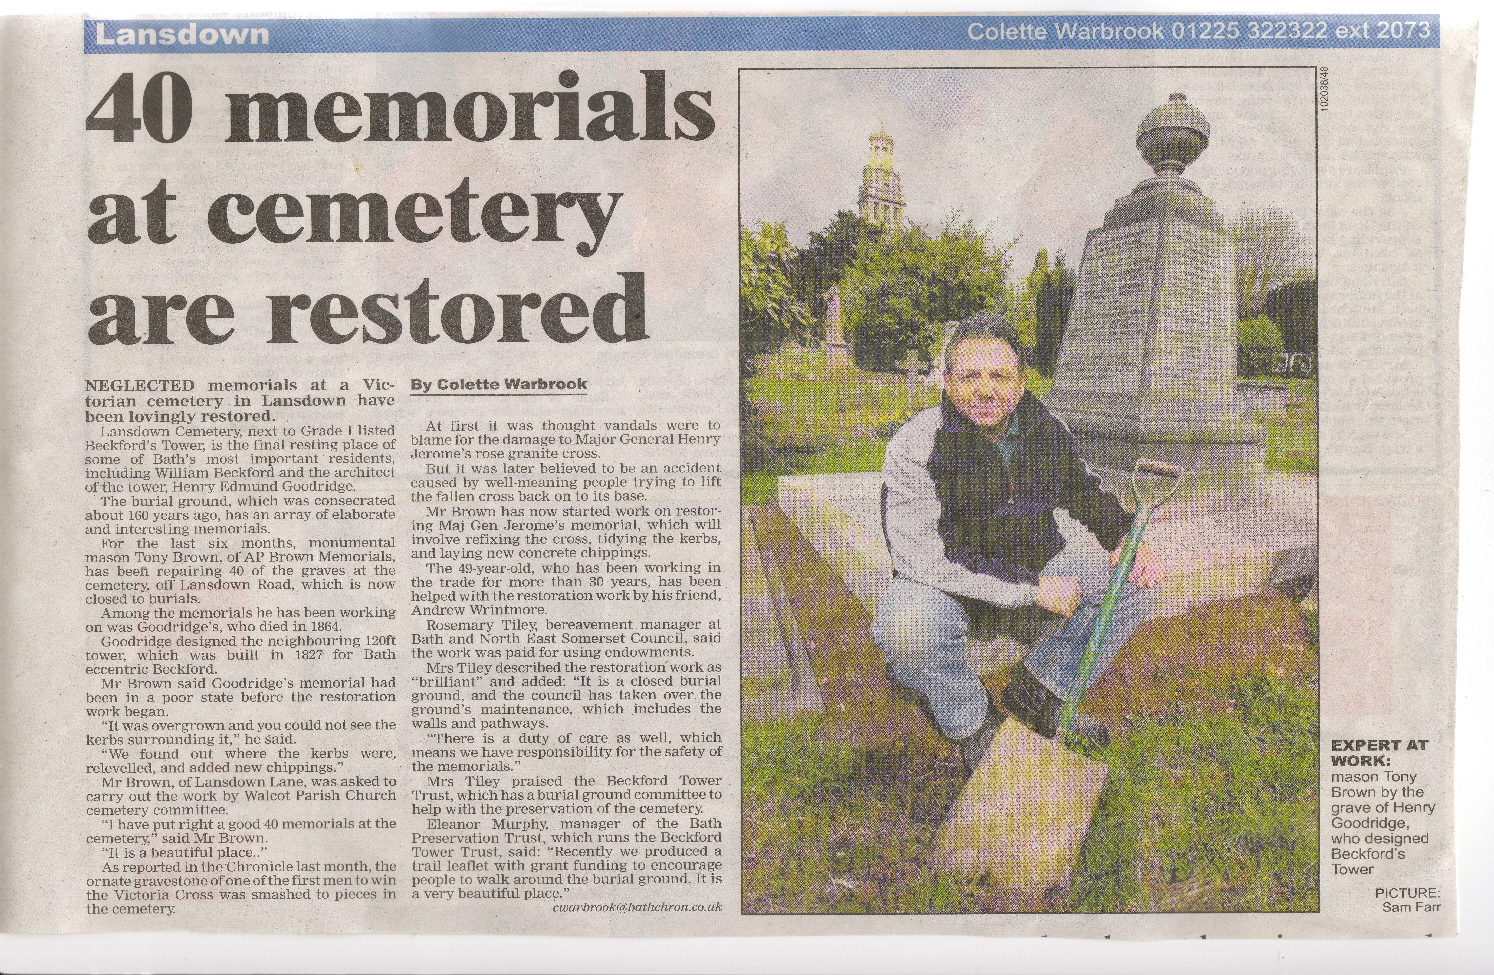 Tony Brown repairs negleted memorial in Lansdown